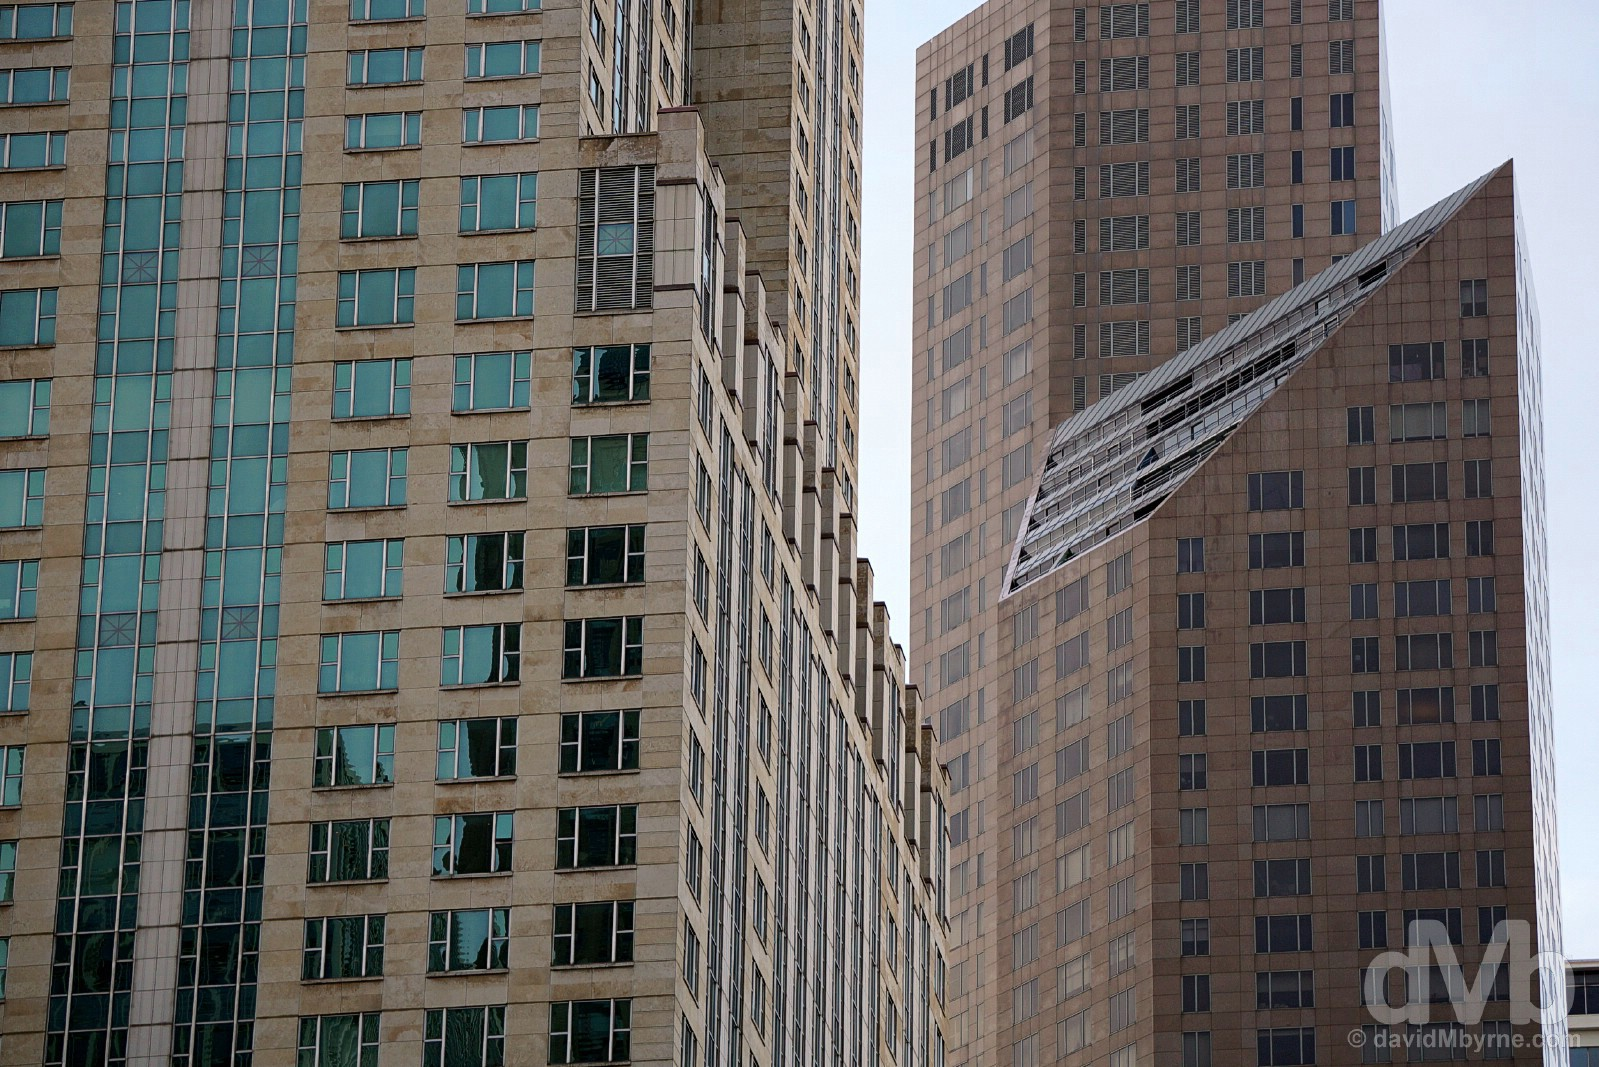 Architecture of the Magnificent Mile, Chicago, Illinois, USA. October 1, 2016.